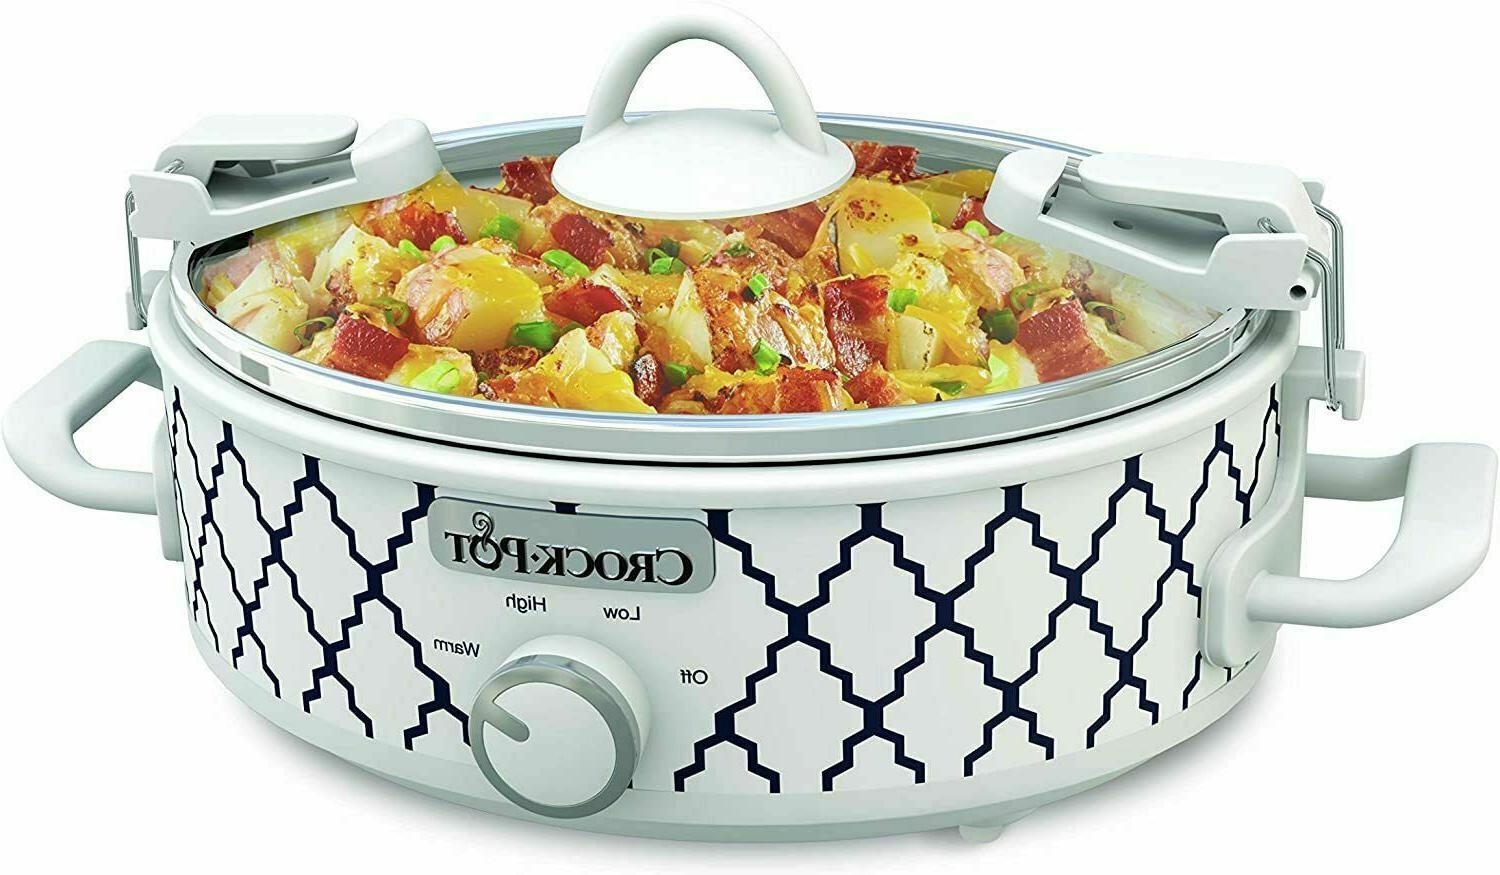 Crockpot 2.5-Quart Mini Casserole Crock Slow Cooker, White/B